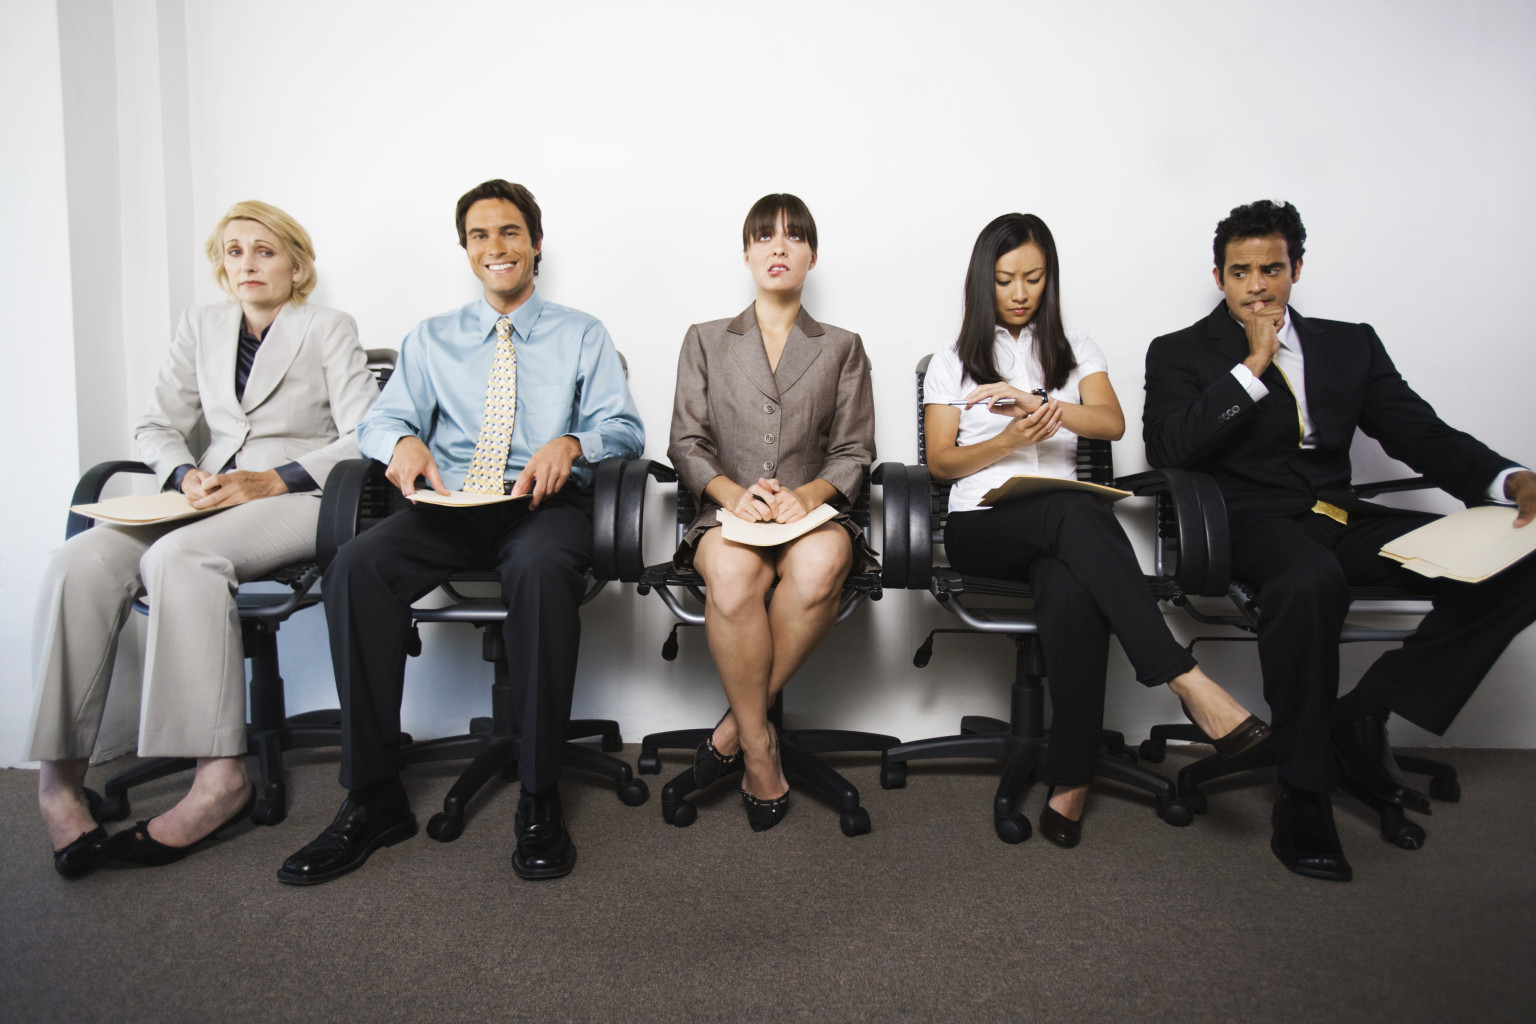 ways to get noticed by executive headhunters